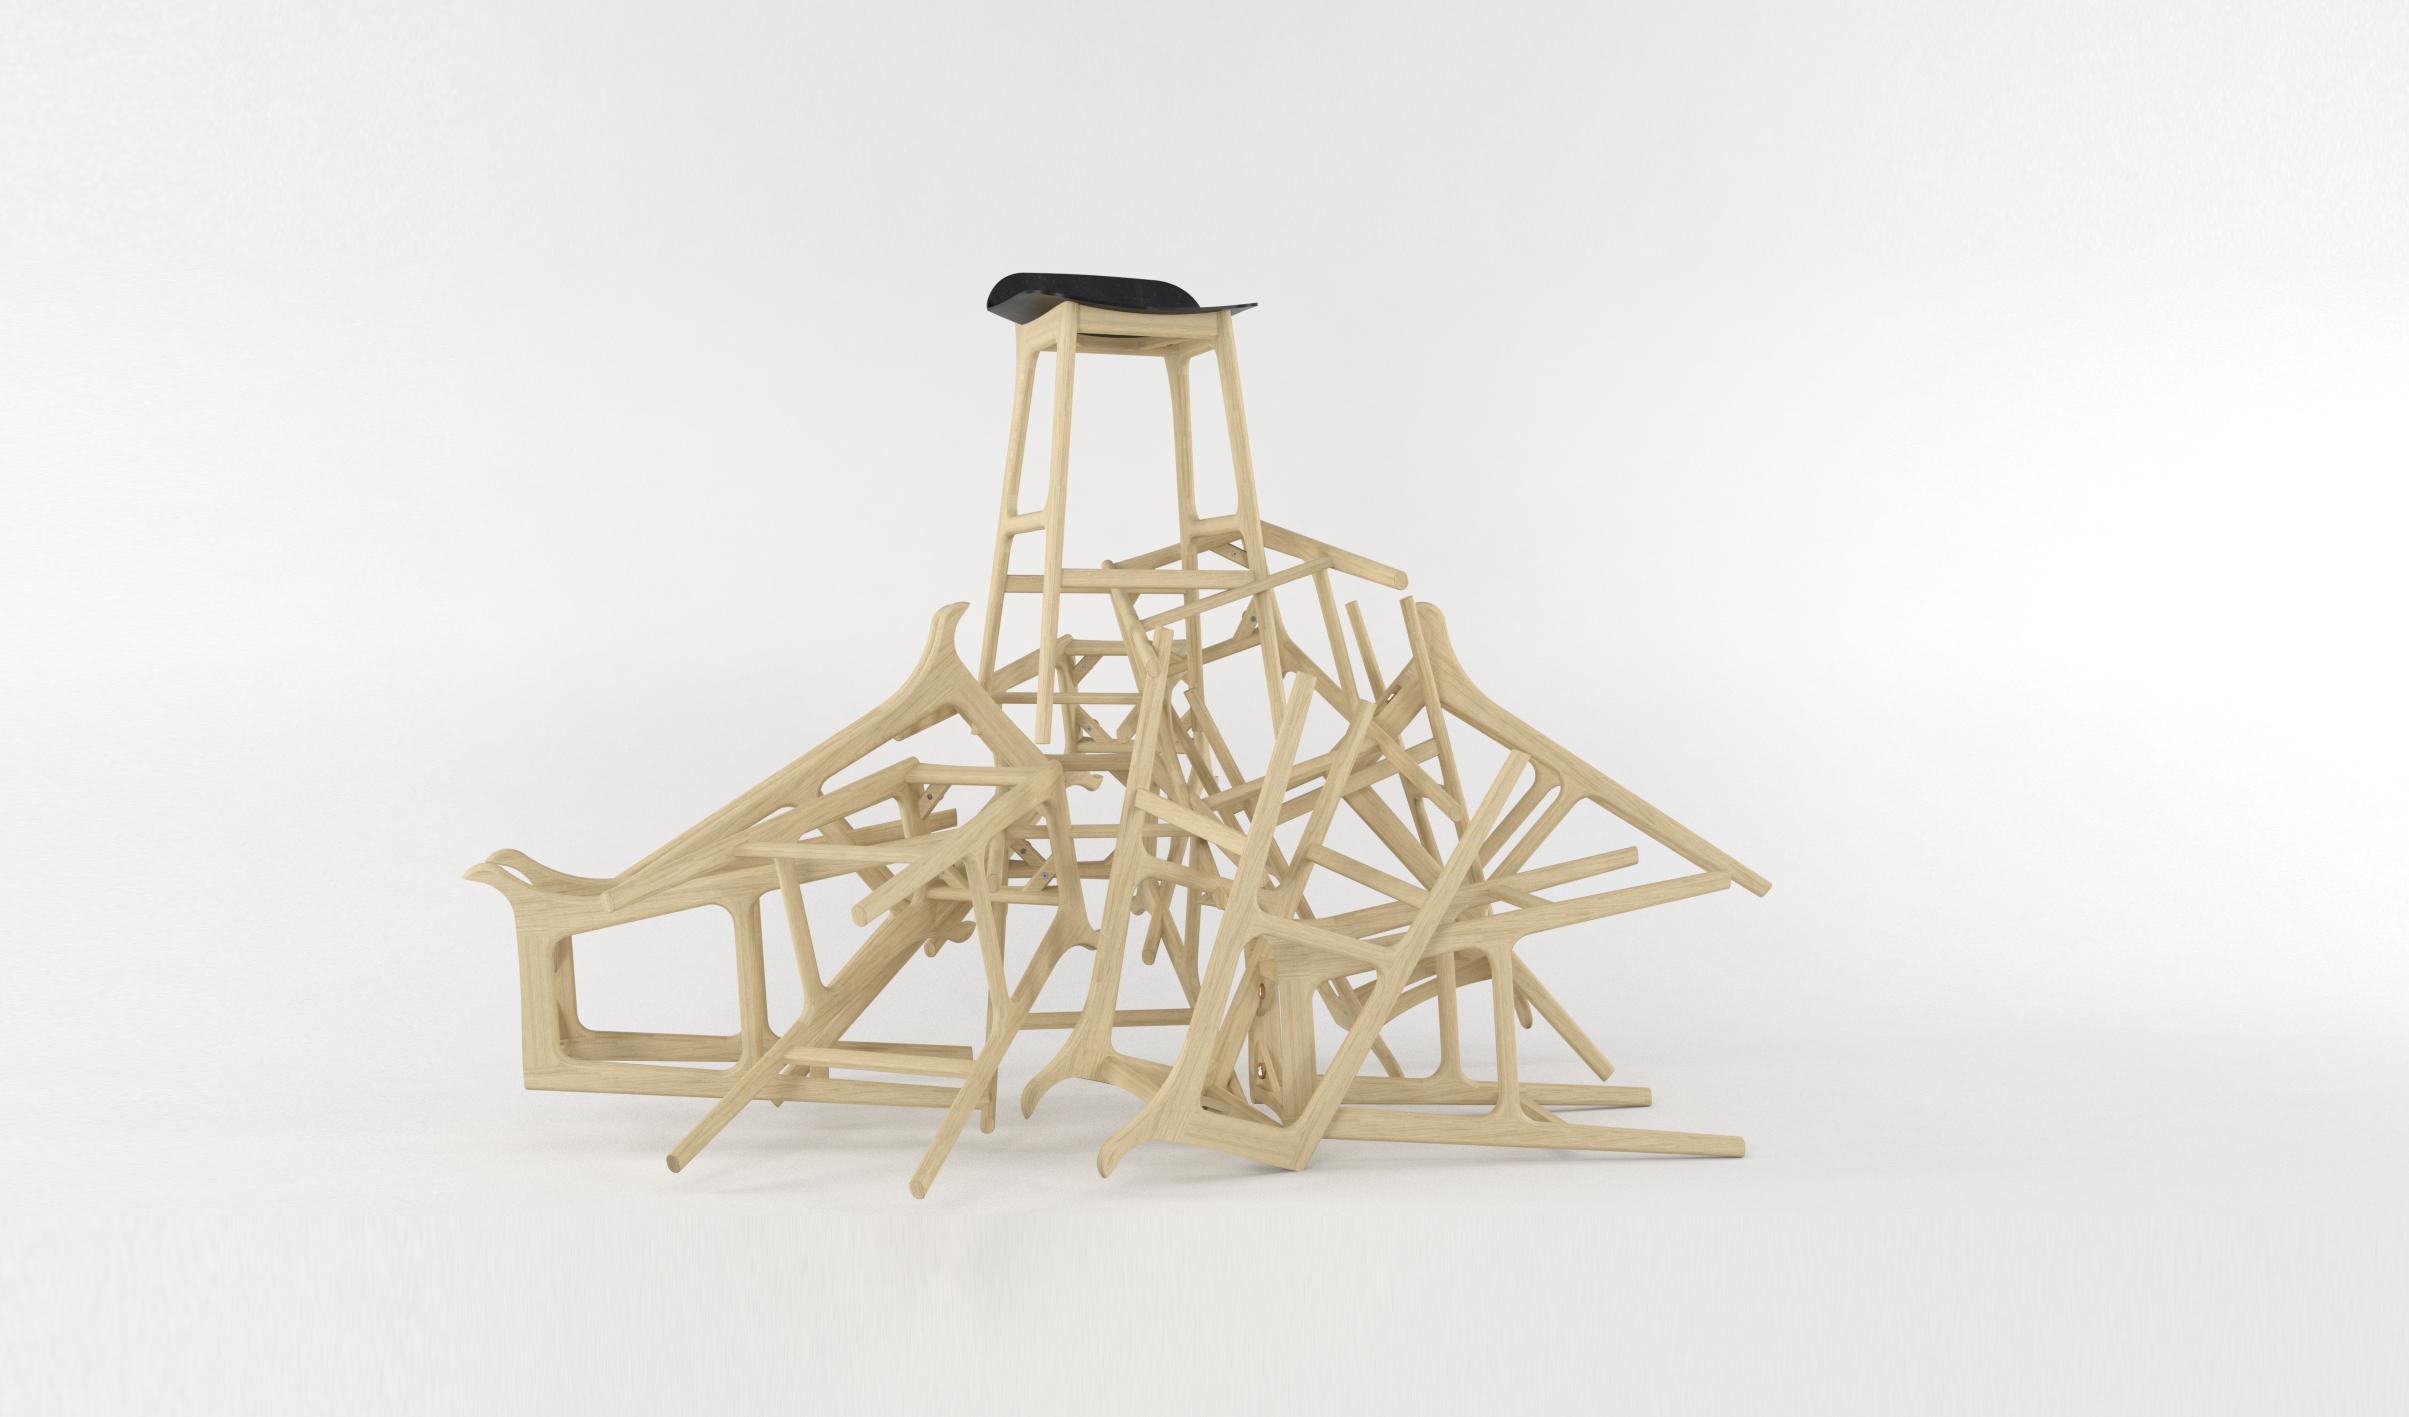 Render_Unusual_Stool_Mountain_Of_Frames_02.jpg